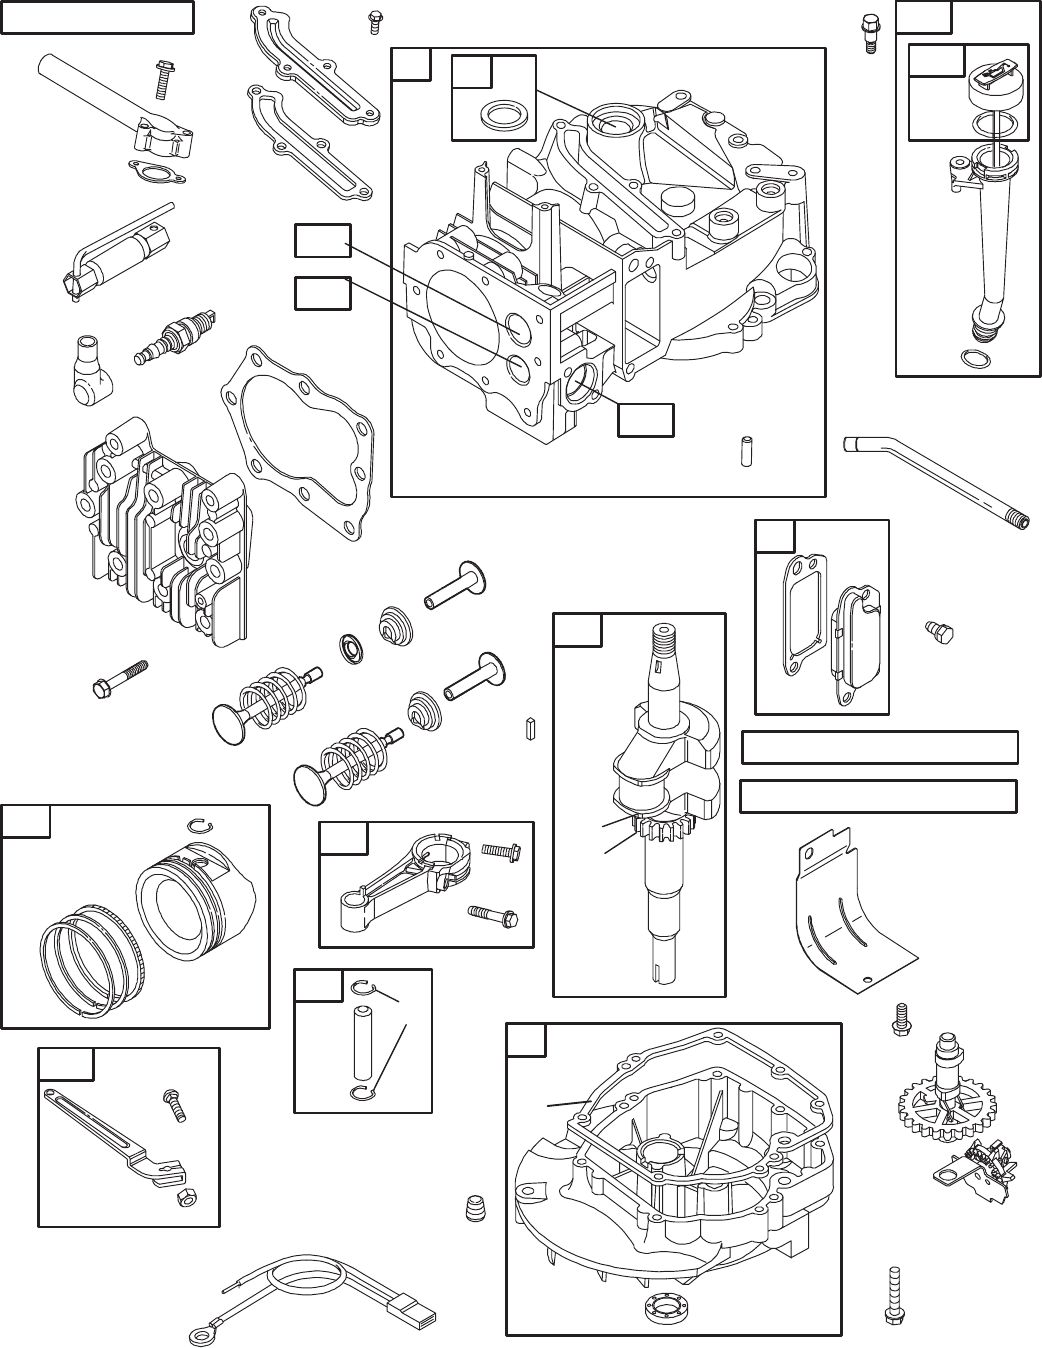 Page 26 of Craftsman Yard Vacuum 247.77099 User Guide